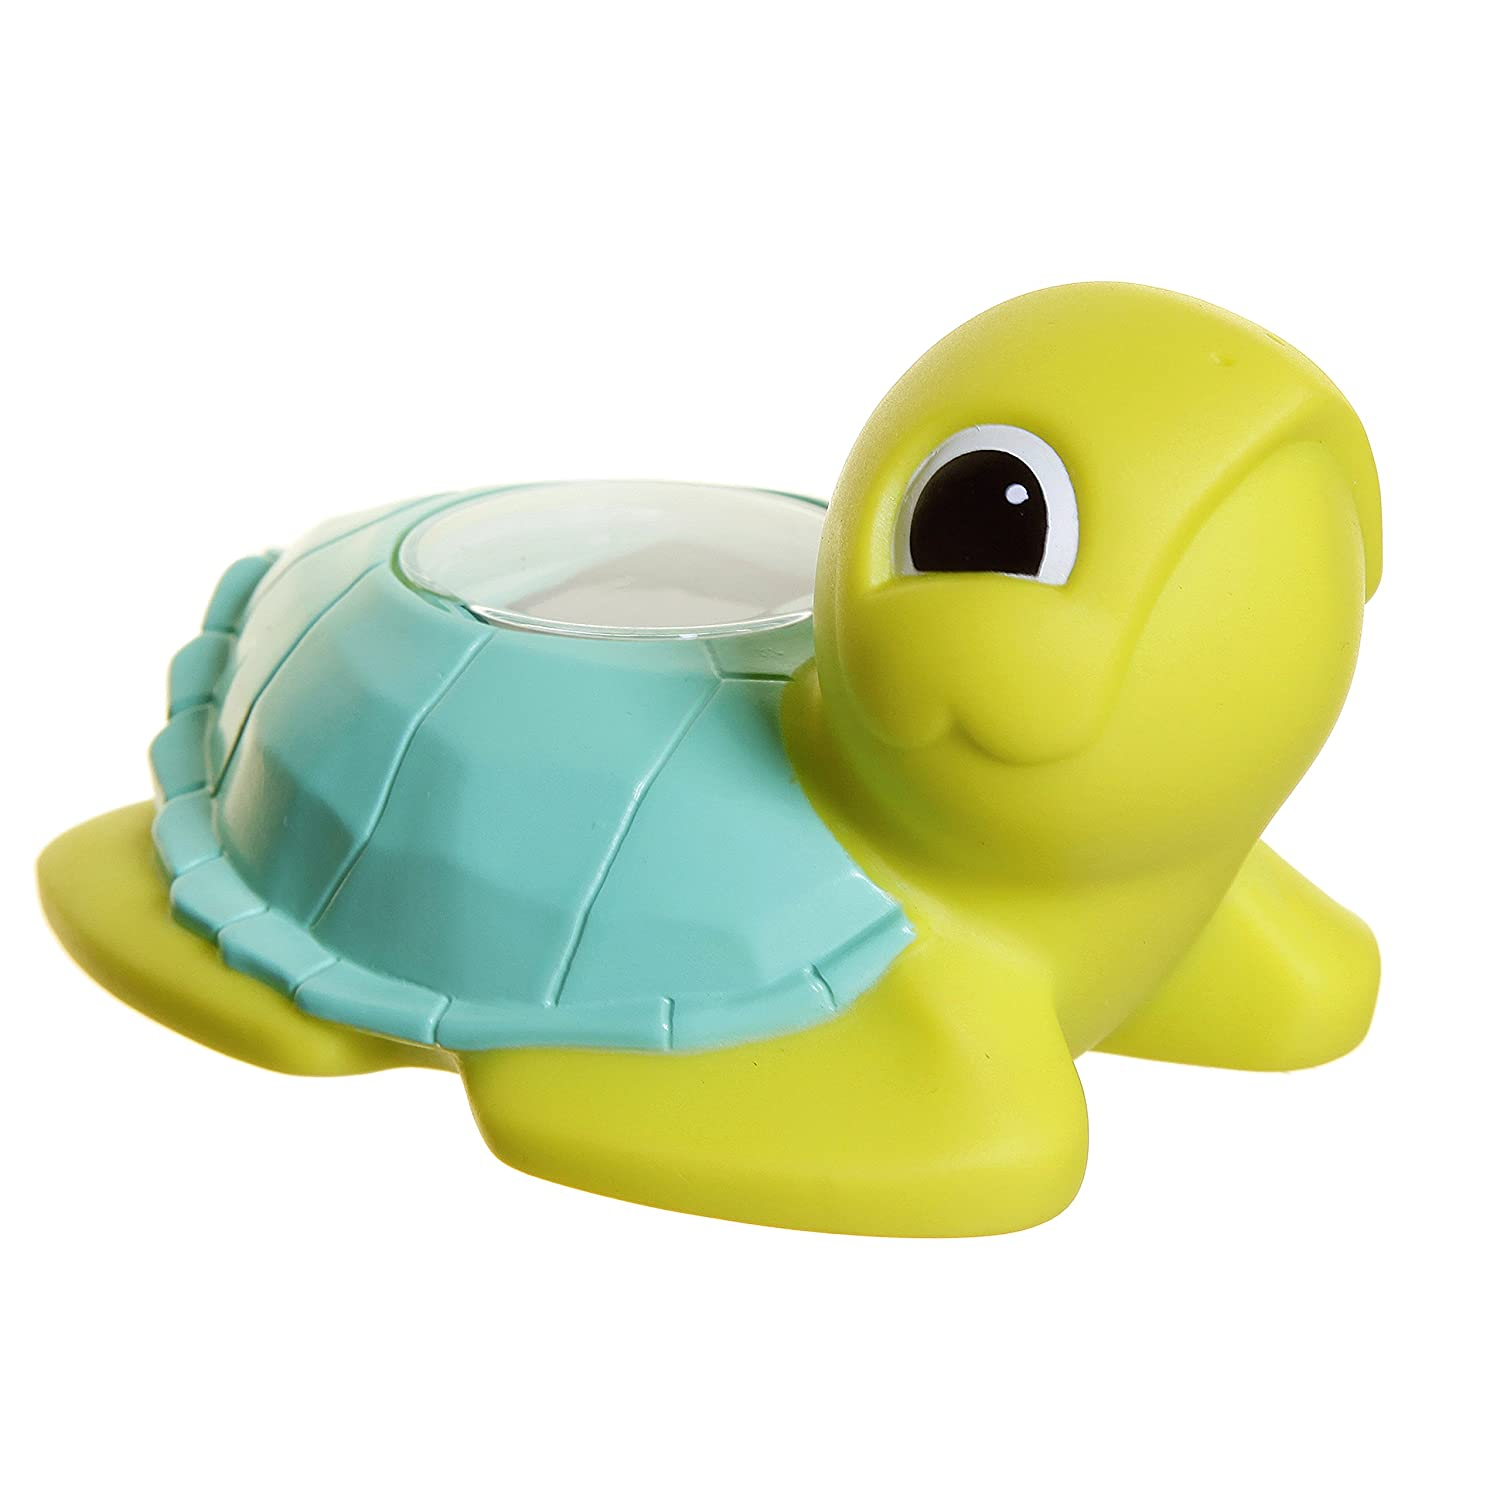 Dreambaby Room & Bath Thermometer - BPA Free - Accurate Temperature Gauge (Turtle) L361